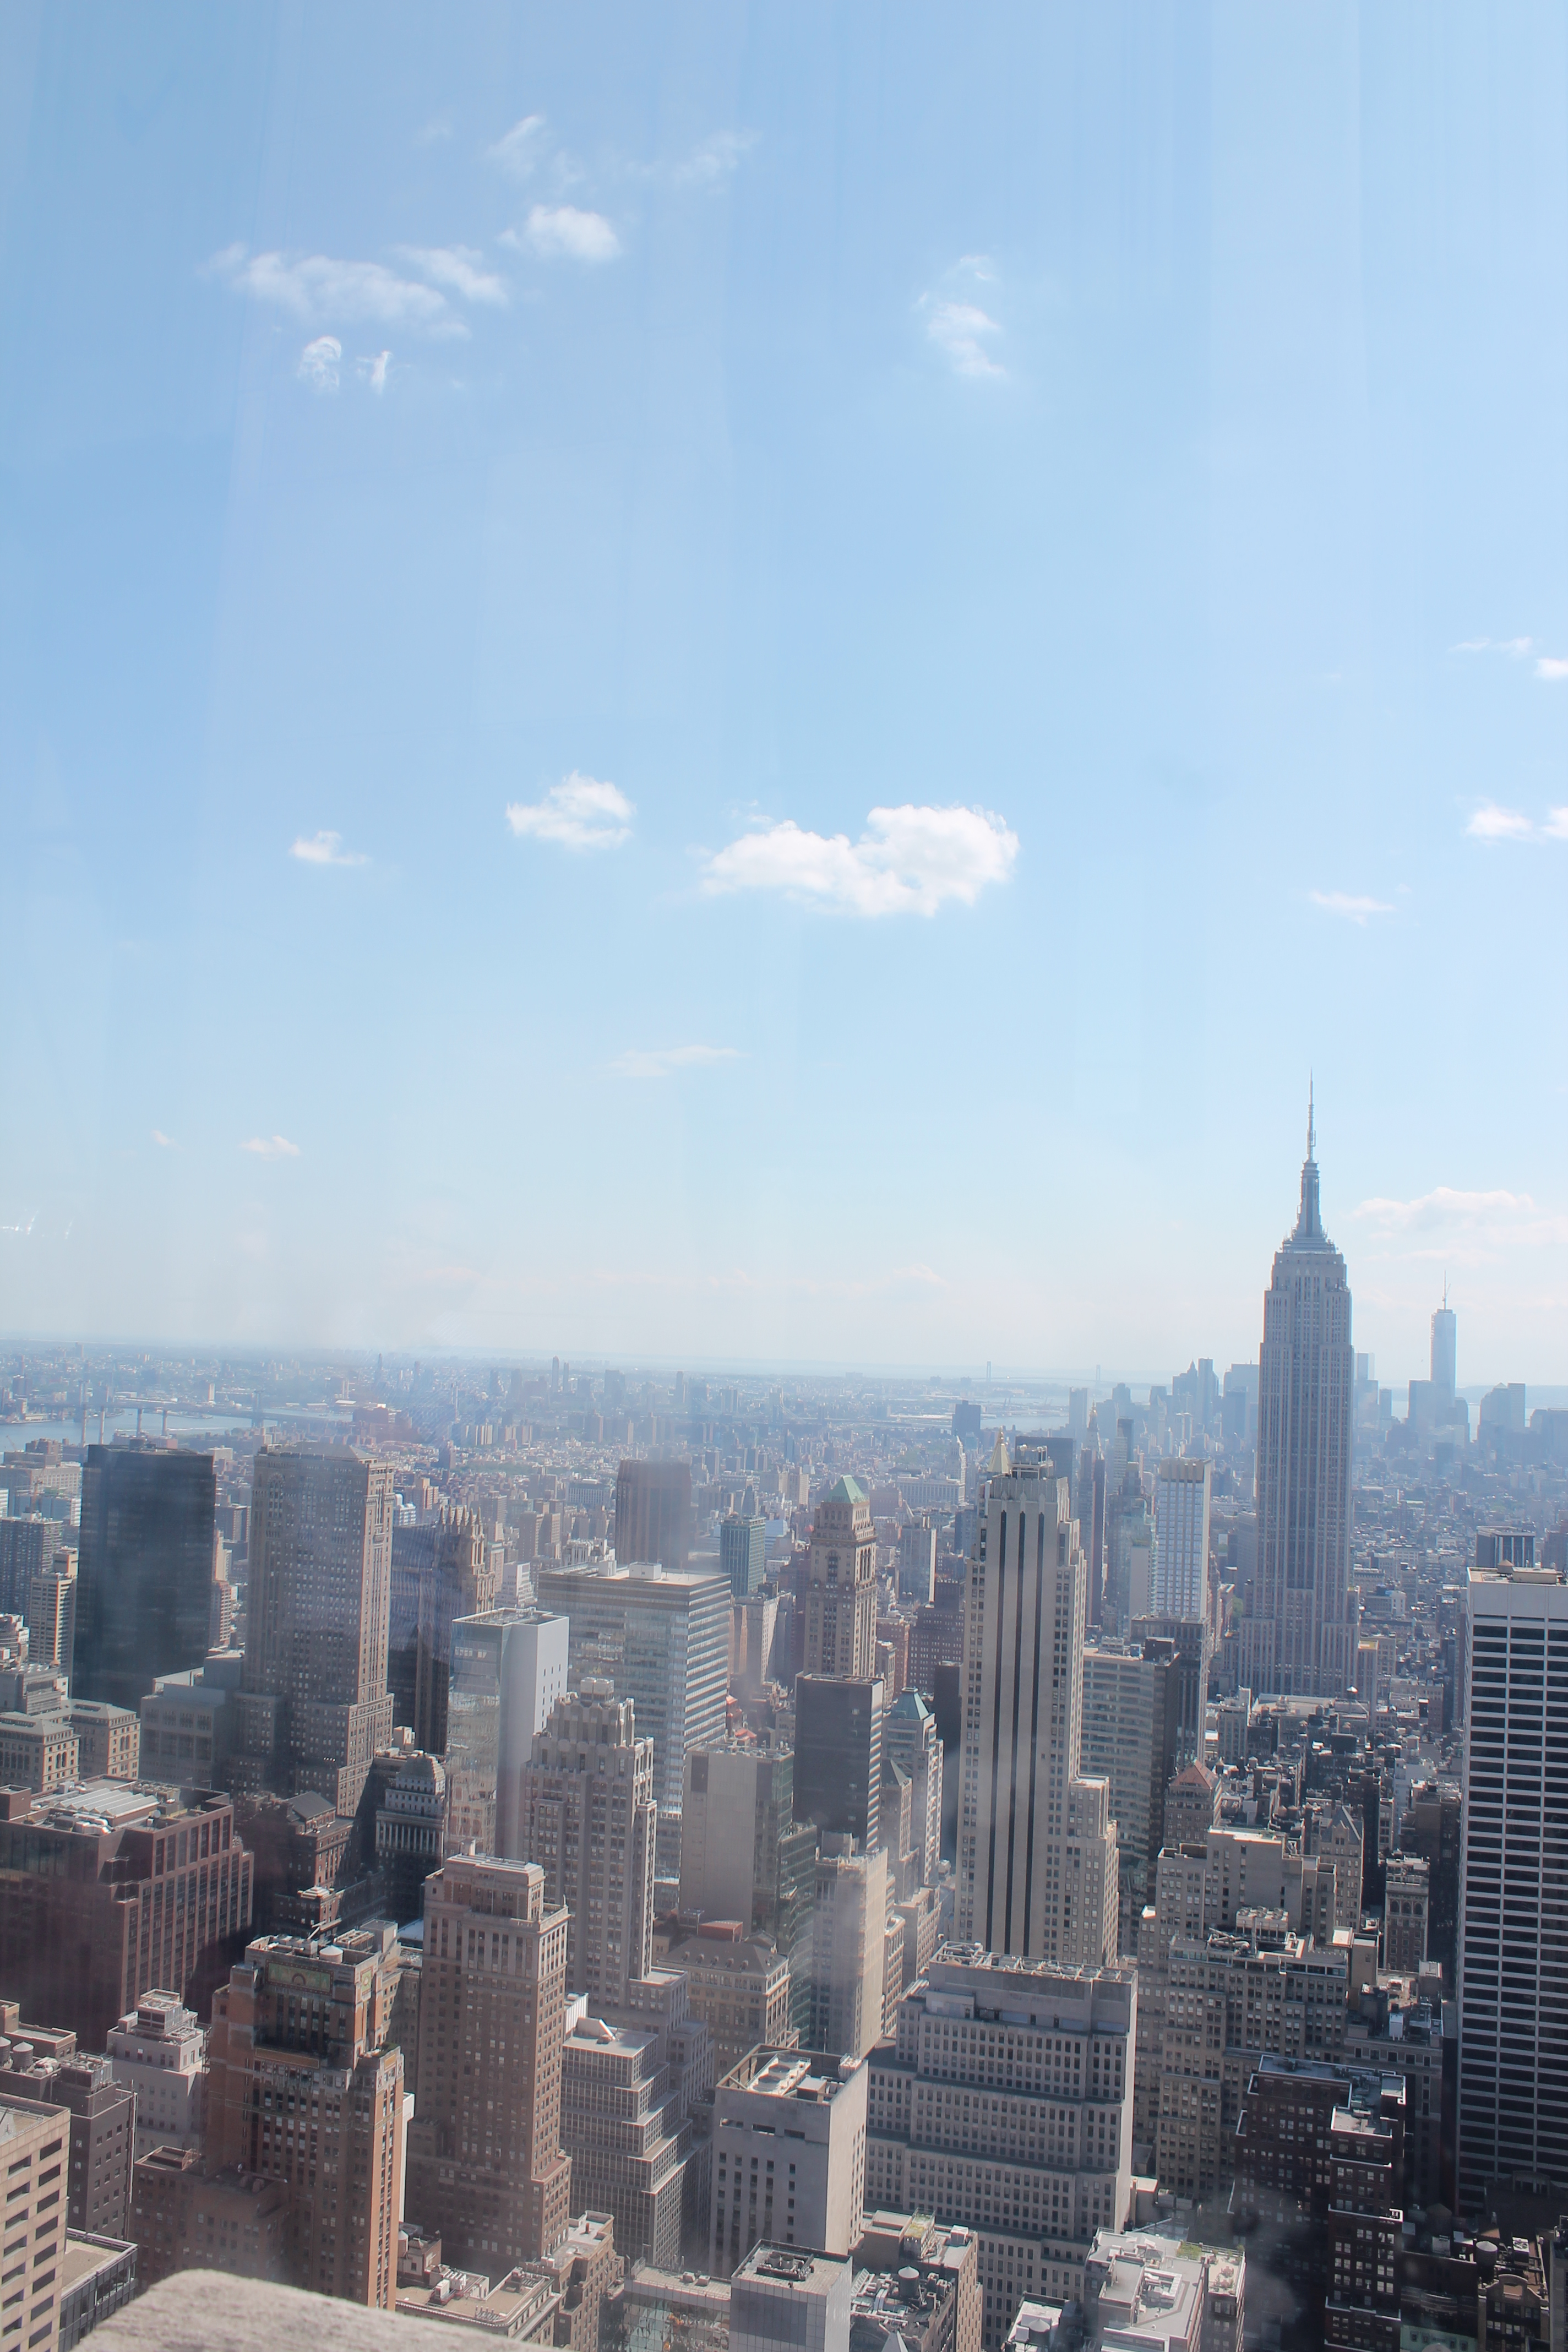 A view of New York from the Top of the Rockefeller Center. (Photo: Super G)